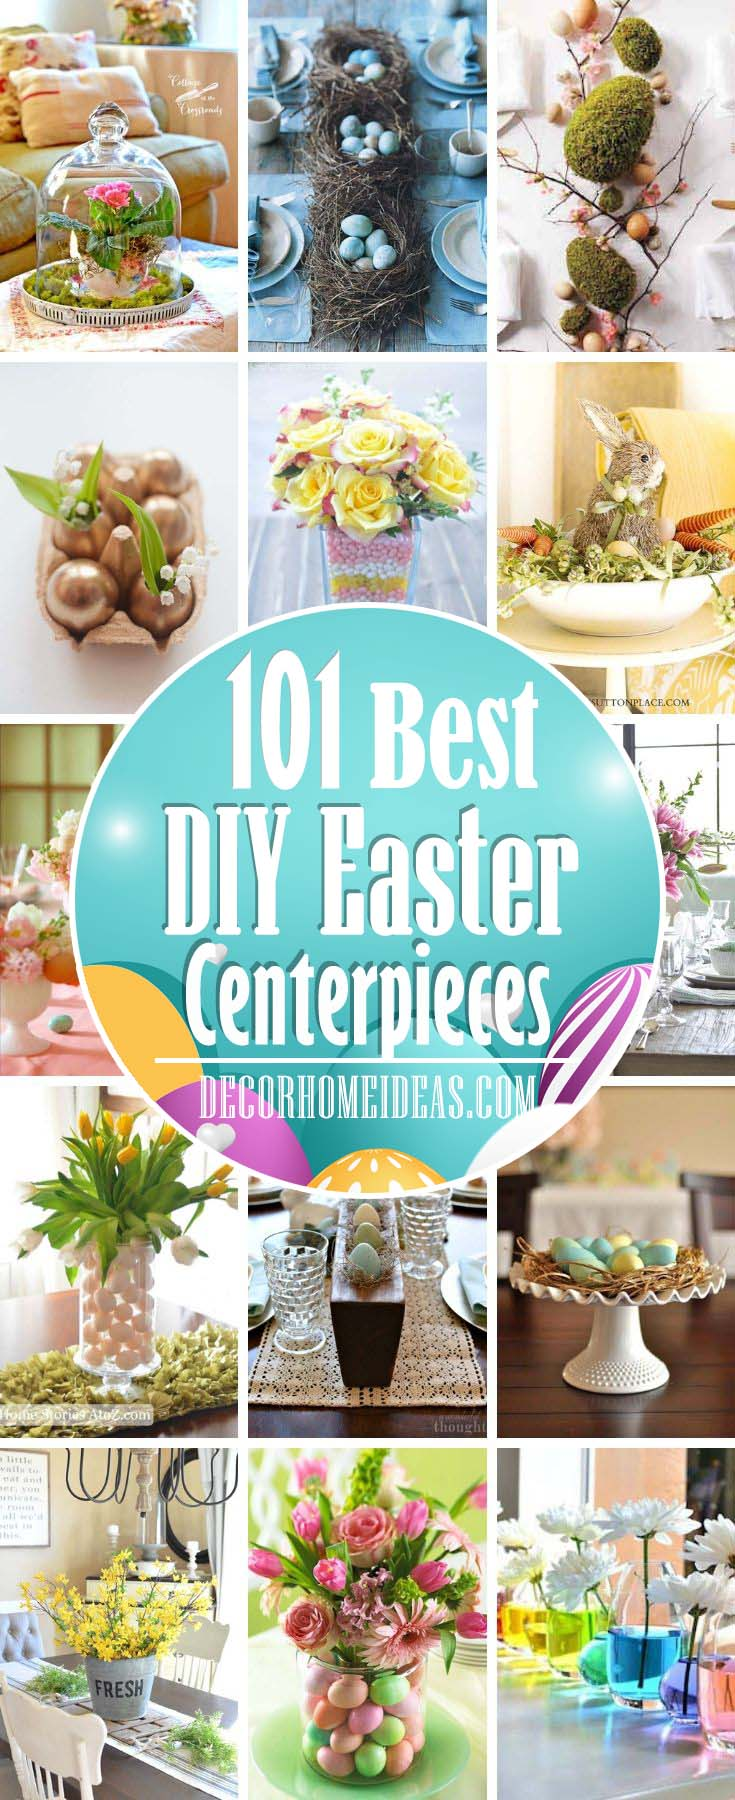 Best DIY Easter Centerpieces. Fresh floral Easter centerpieces, Easter table decorations, place cards, napkins, and more #easter #diy #centerpiece #decorhomeideas